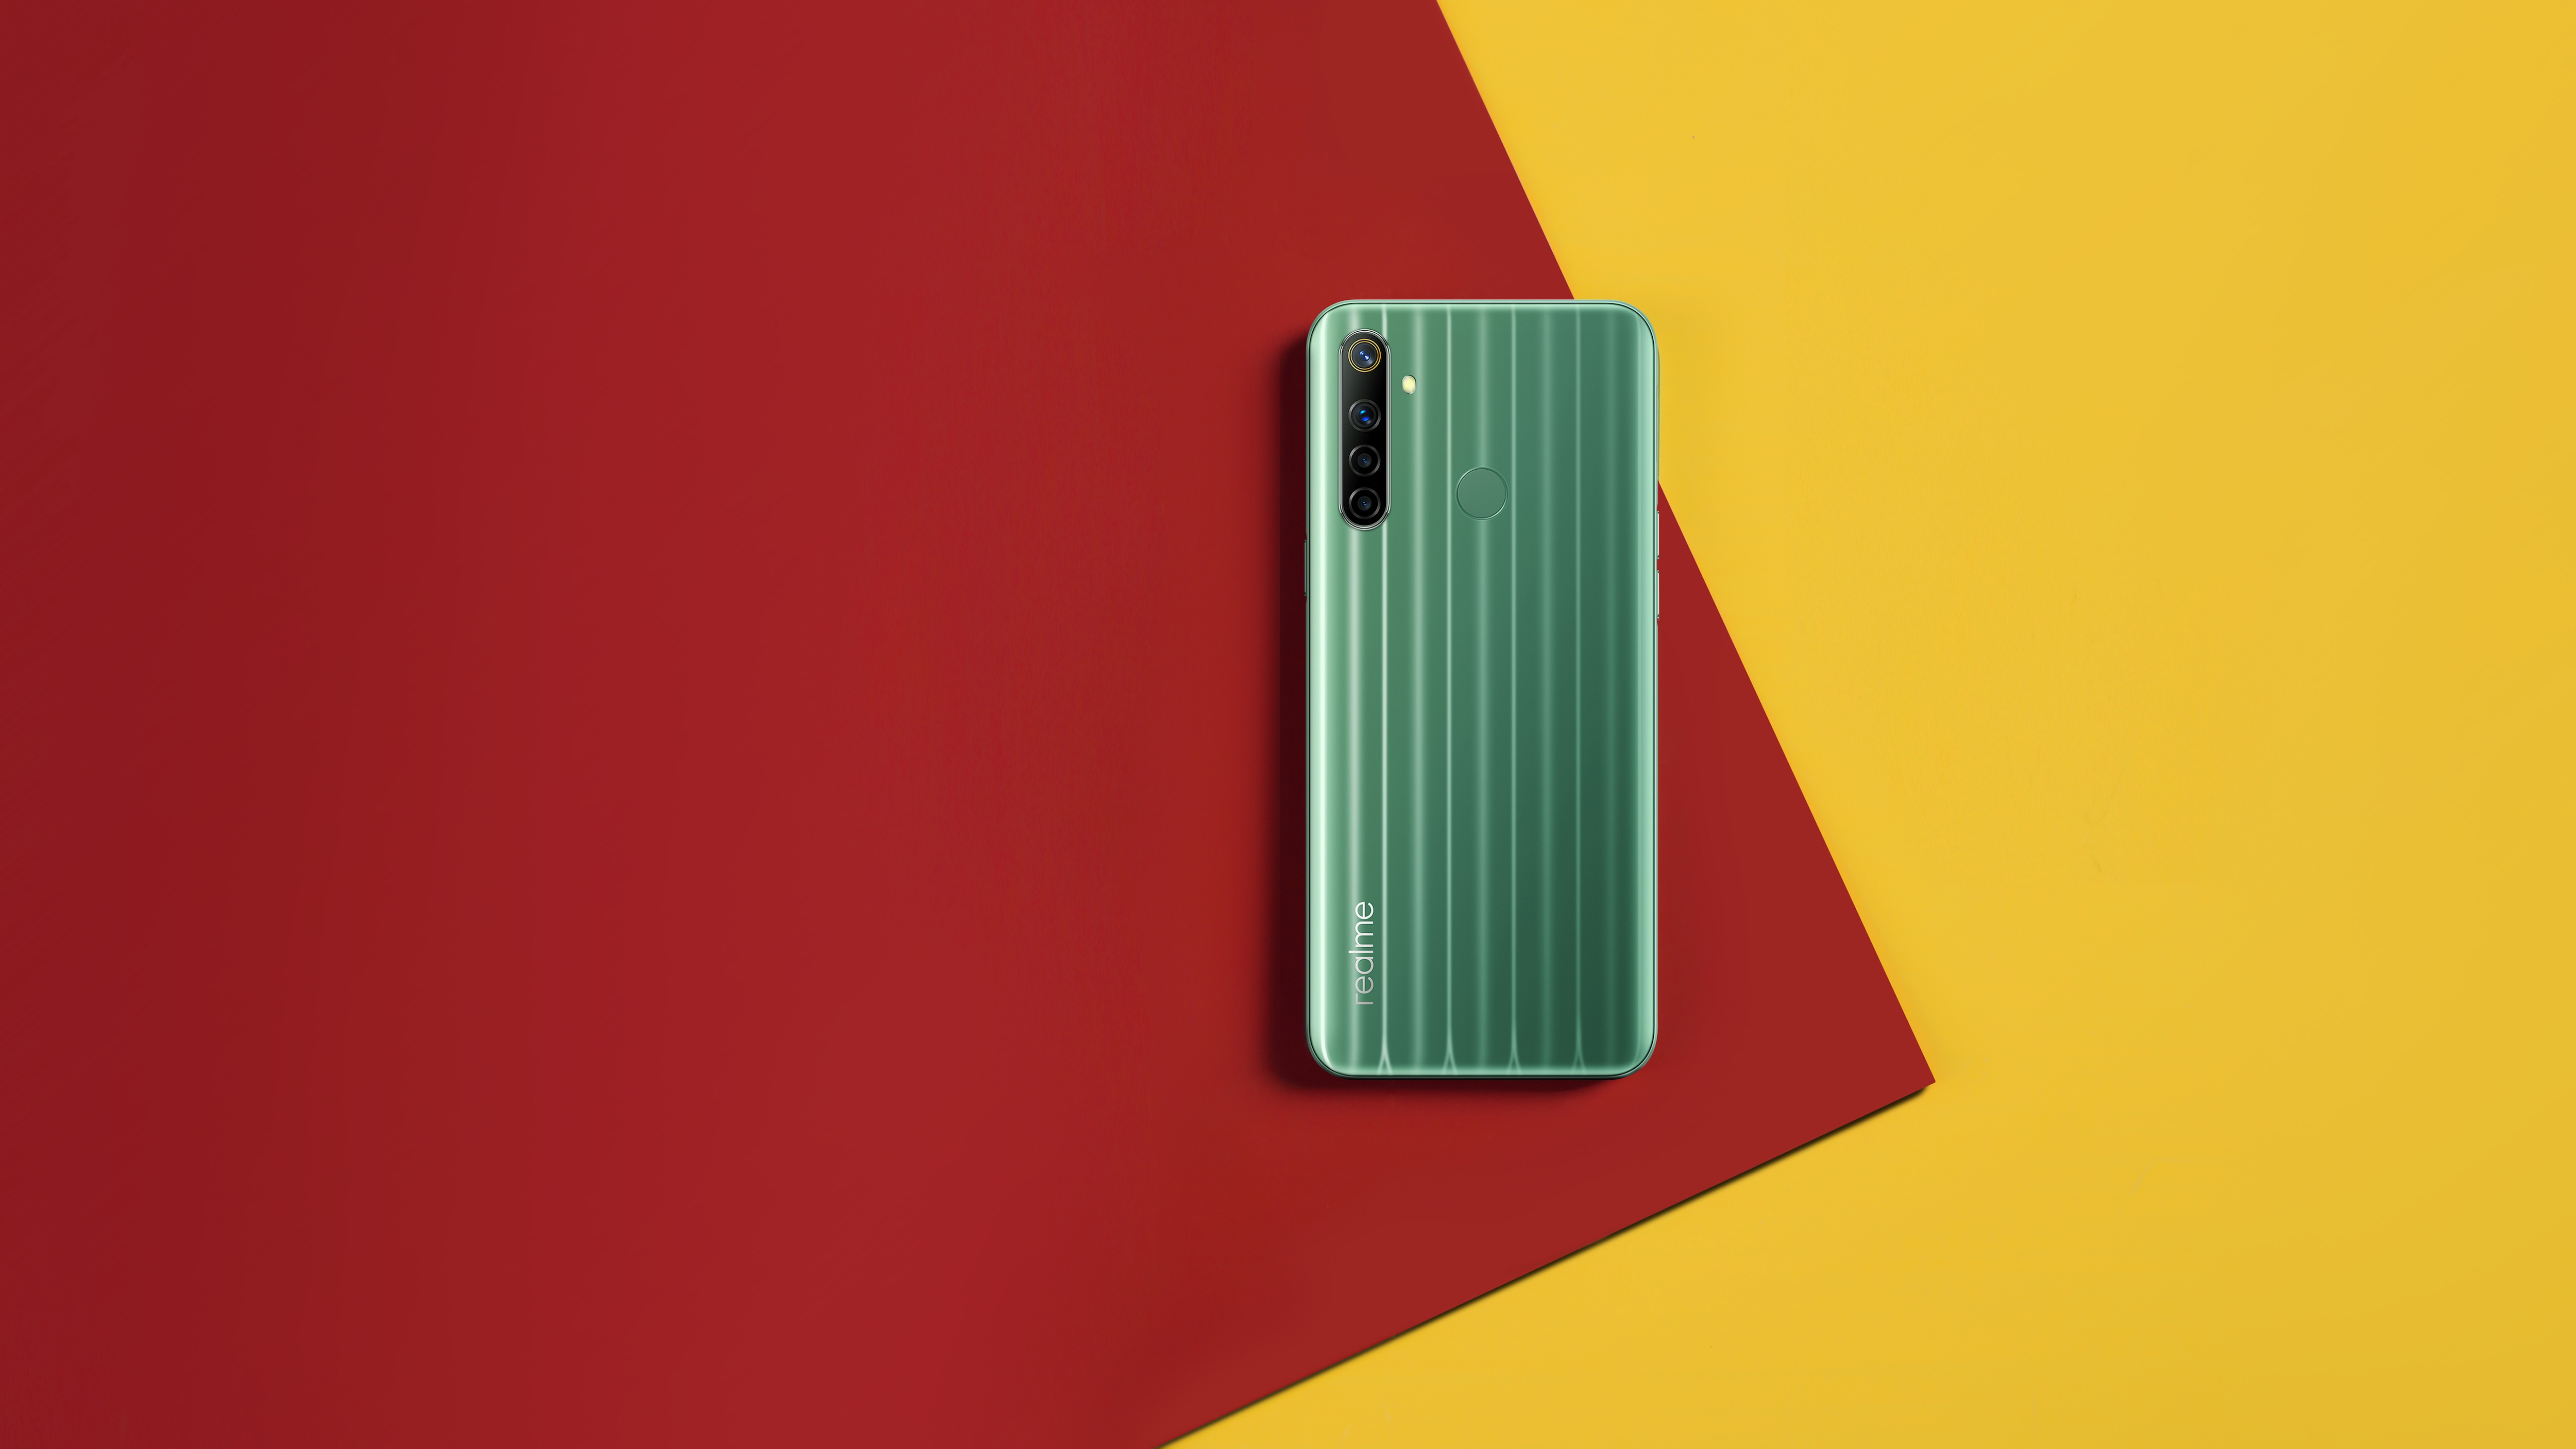 Realme has finally launched its budget gaming smartphone series in India. The newly launched series consists of two smartphones -- the Realme Narzo 10 and the Realme Narzo 10A.